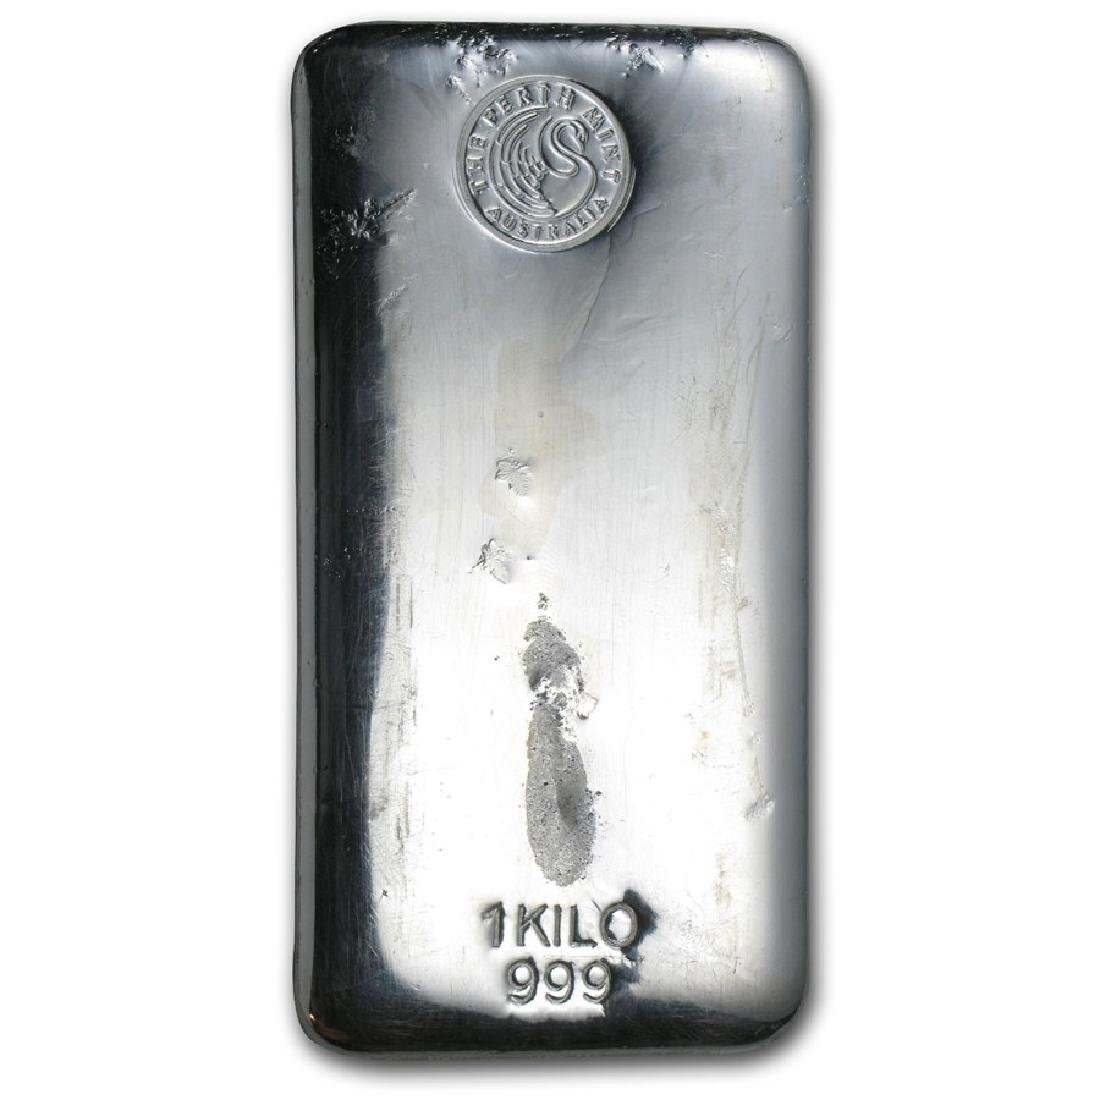 Genuine 1 kilo 0.999 Fine Silver Bar - Perth Mint - 2